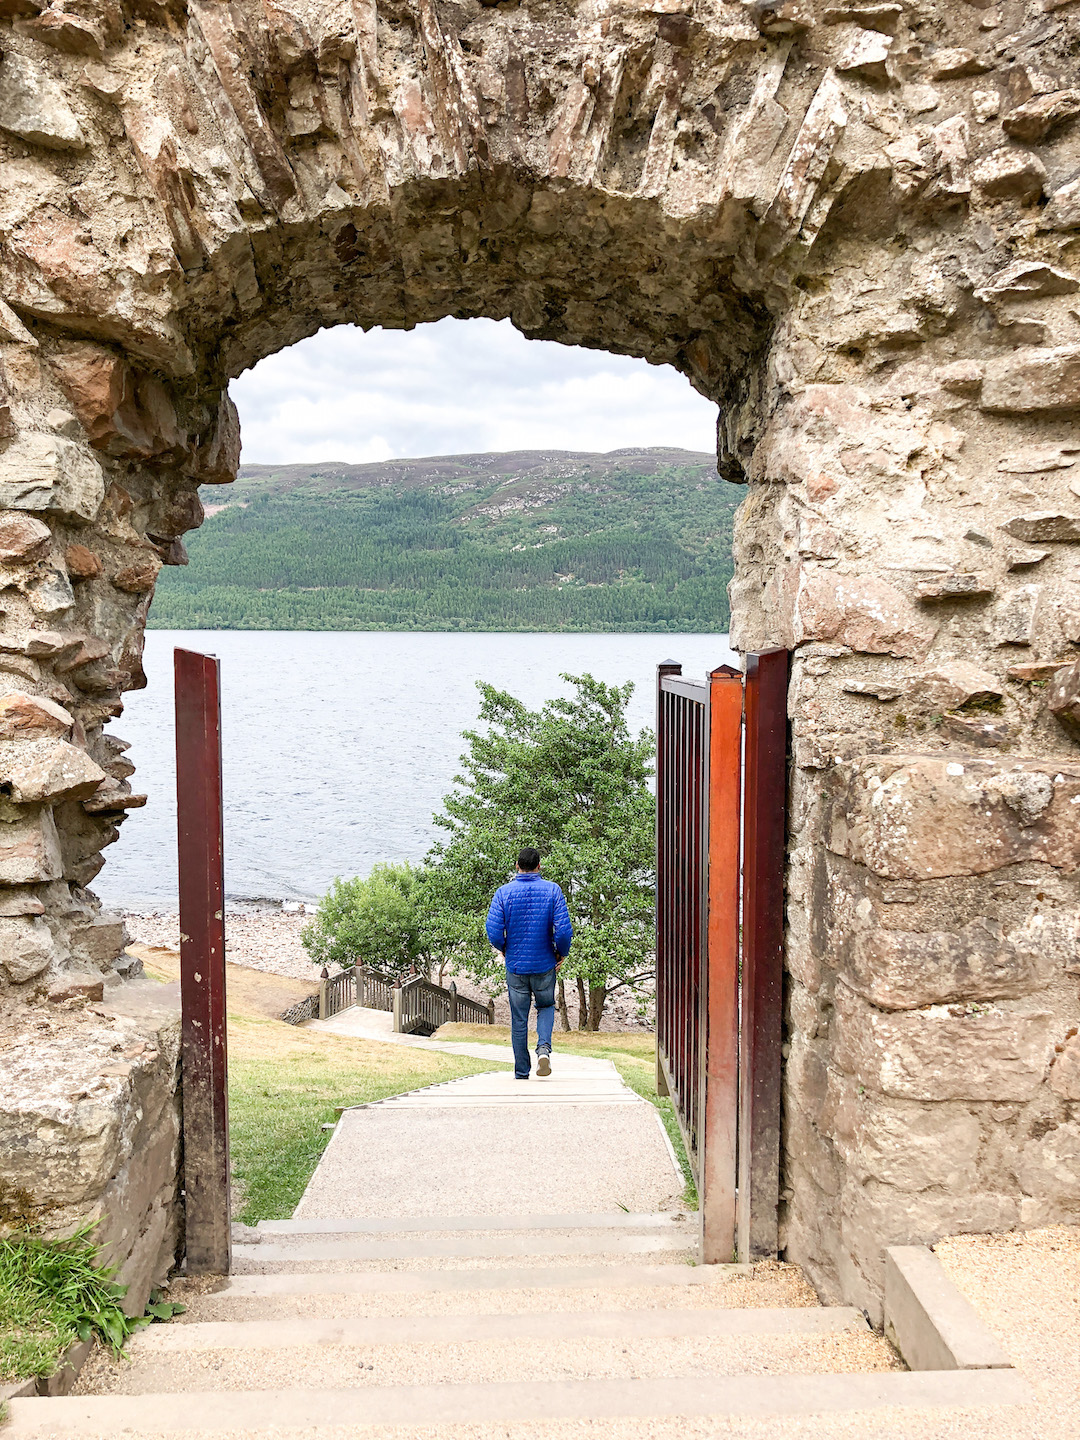 Walking to the Banks of Loch Ness